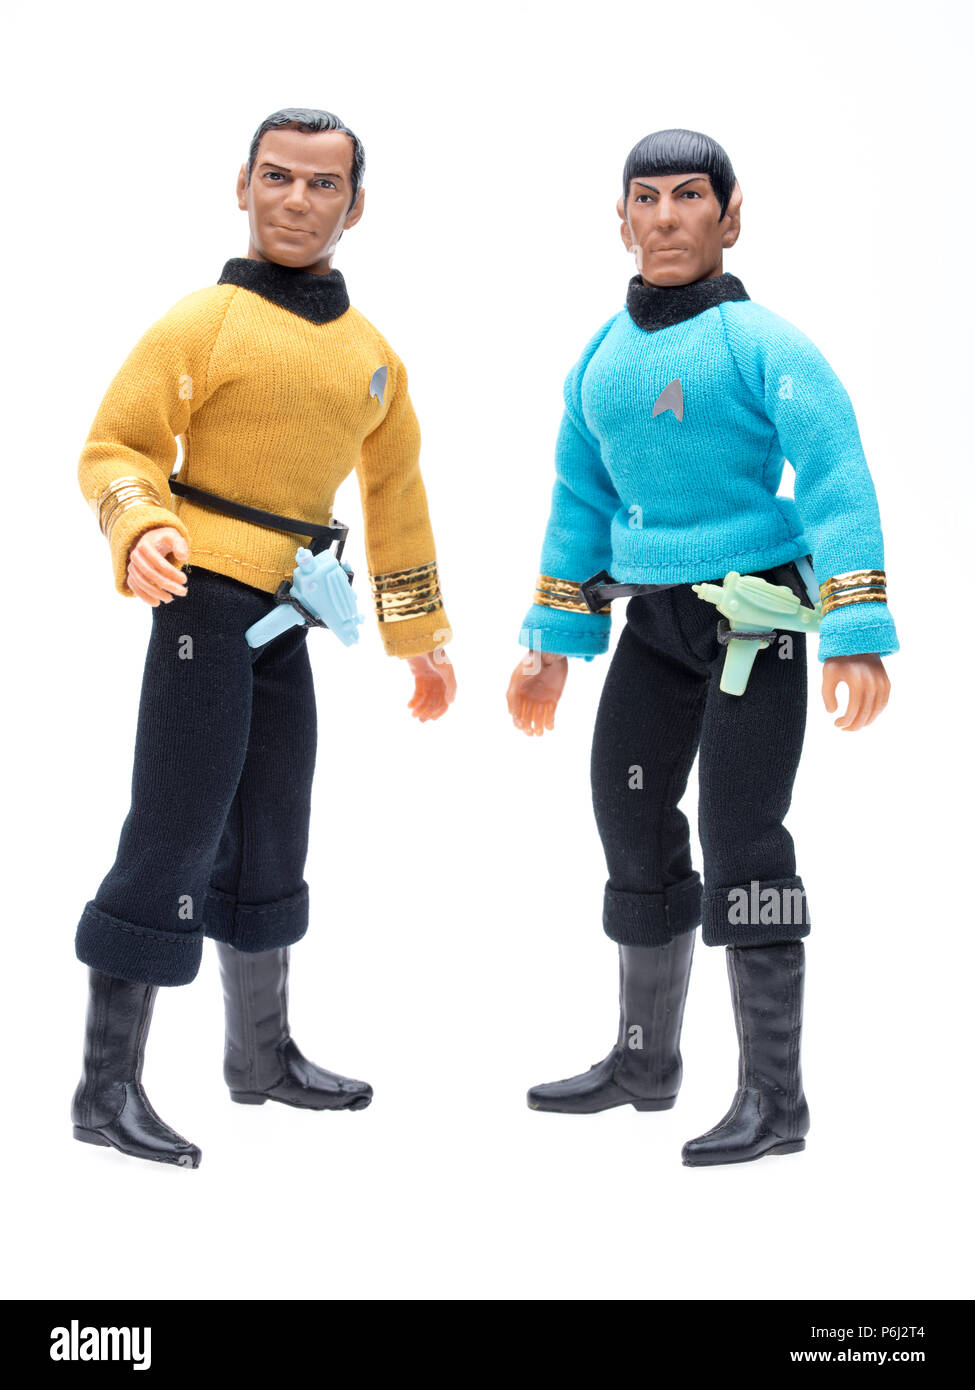 1974 MEGO Star Trek Captain Kirk and Mr. Spock Action Figure with phaser and communicator. - Stock Image